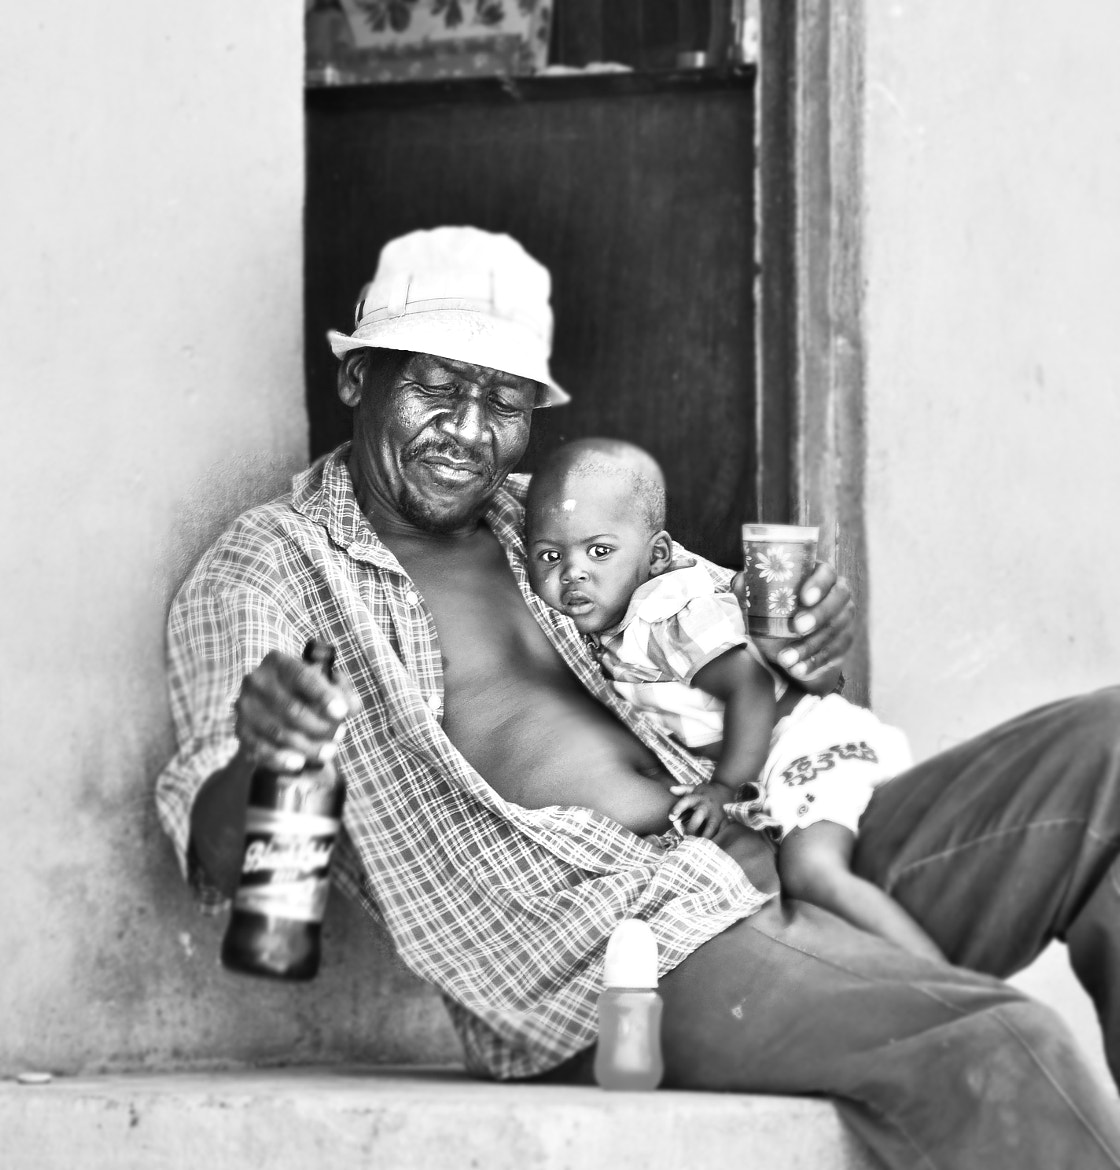 Photograph Imizamo Yethu - Township South Africa 2011 by Danny  on 500px